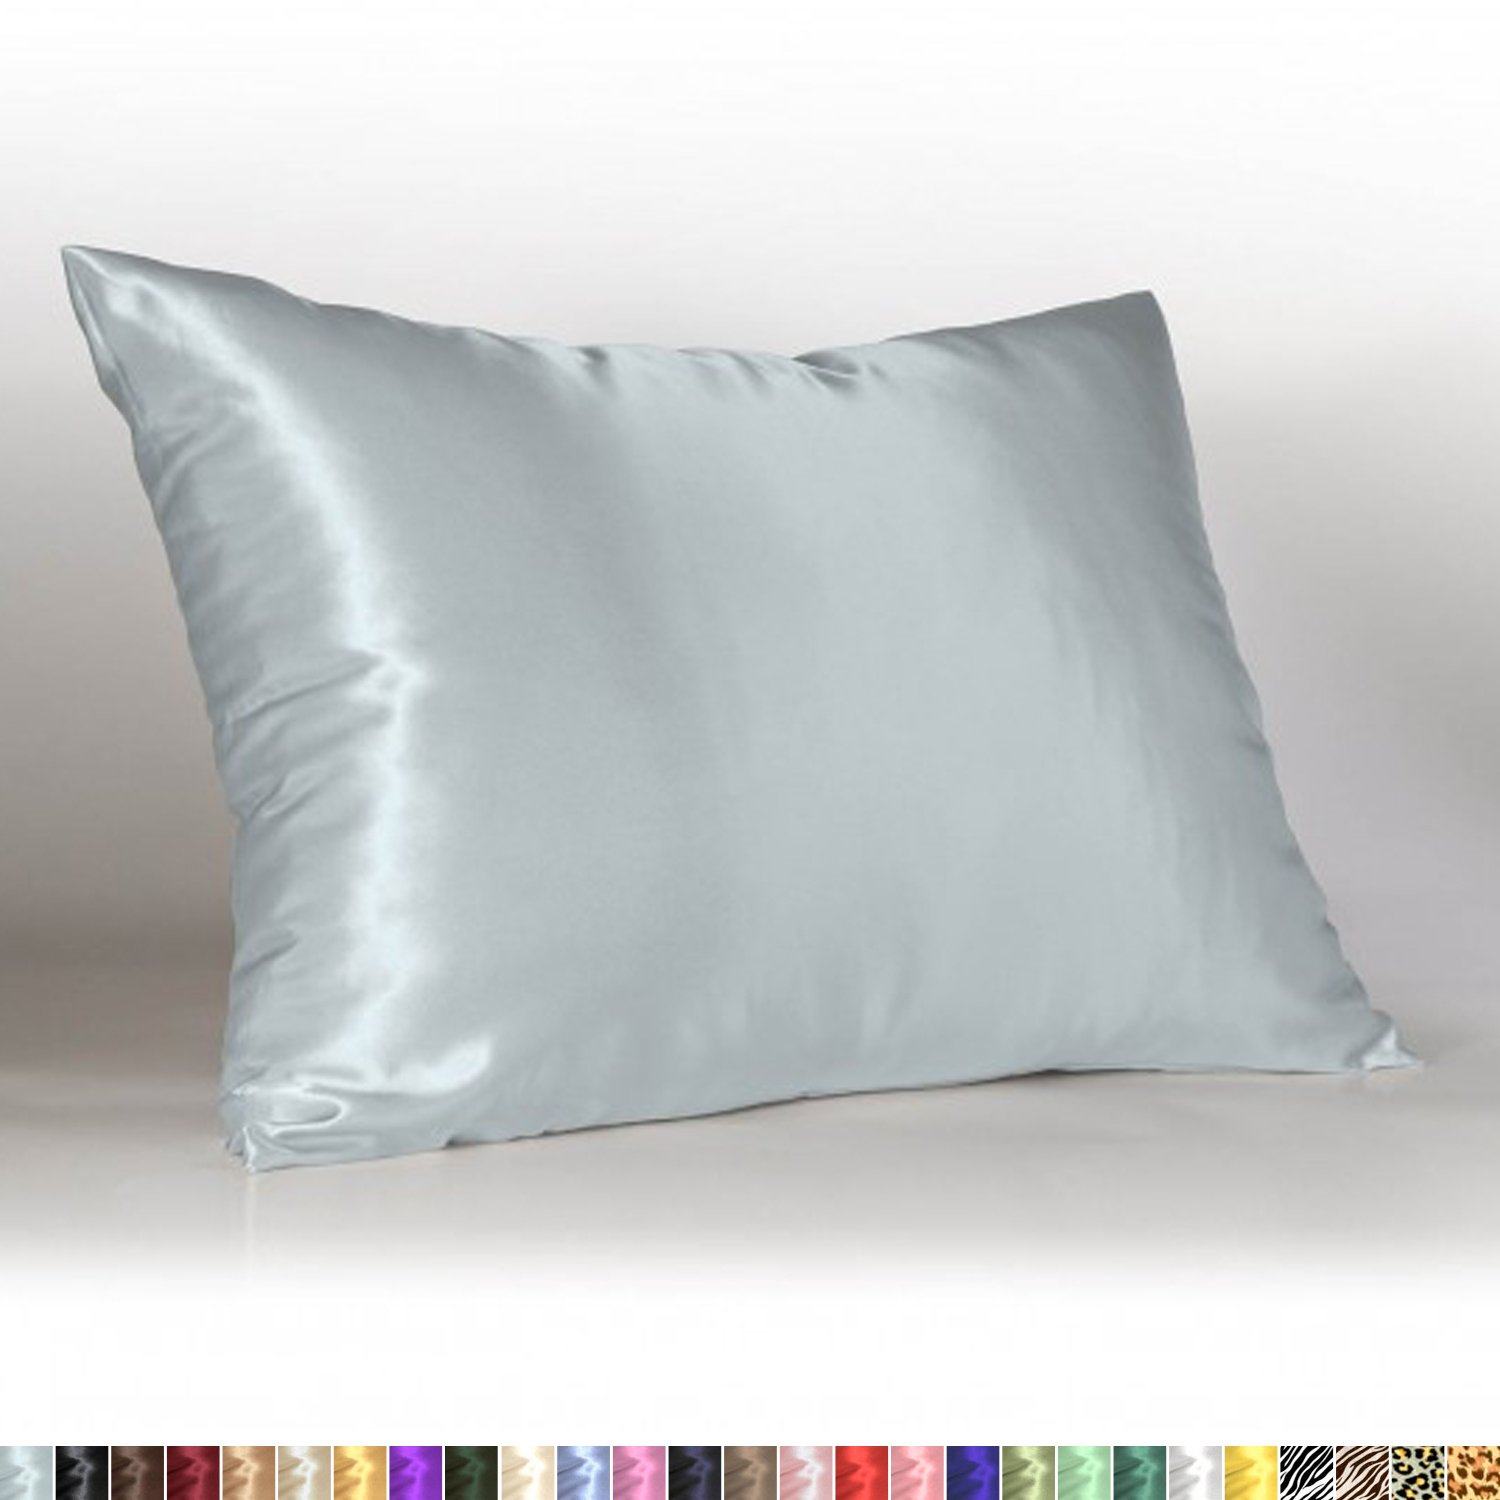 Sweet Dreams - Blissford Luxury Satin Pillowcase with Zipper, Standard Size, Baby Blue (Silky Satin Pillow Case for Hair) By Shop Bedding (1-Pack)